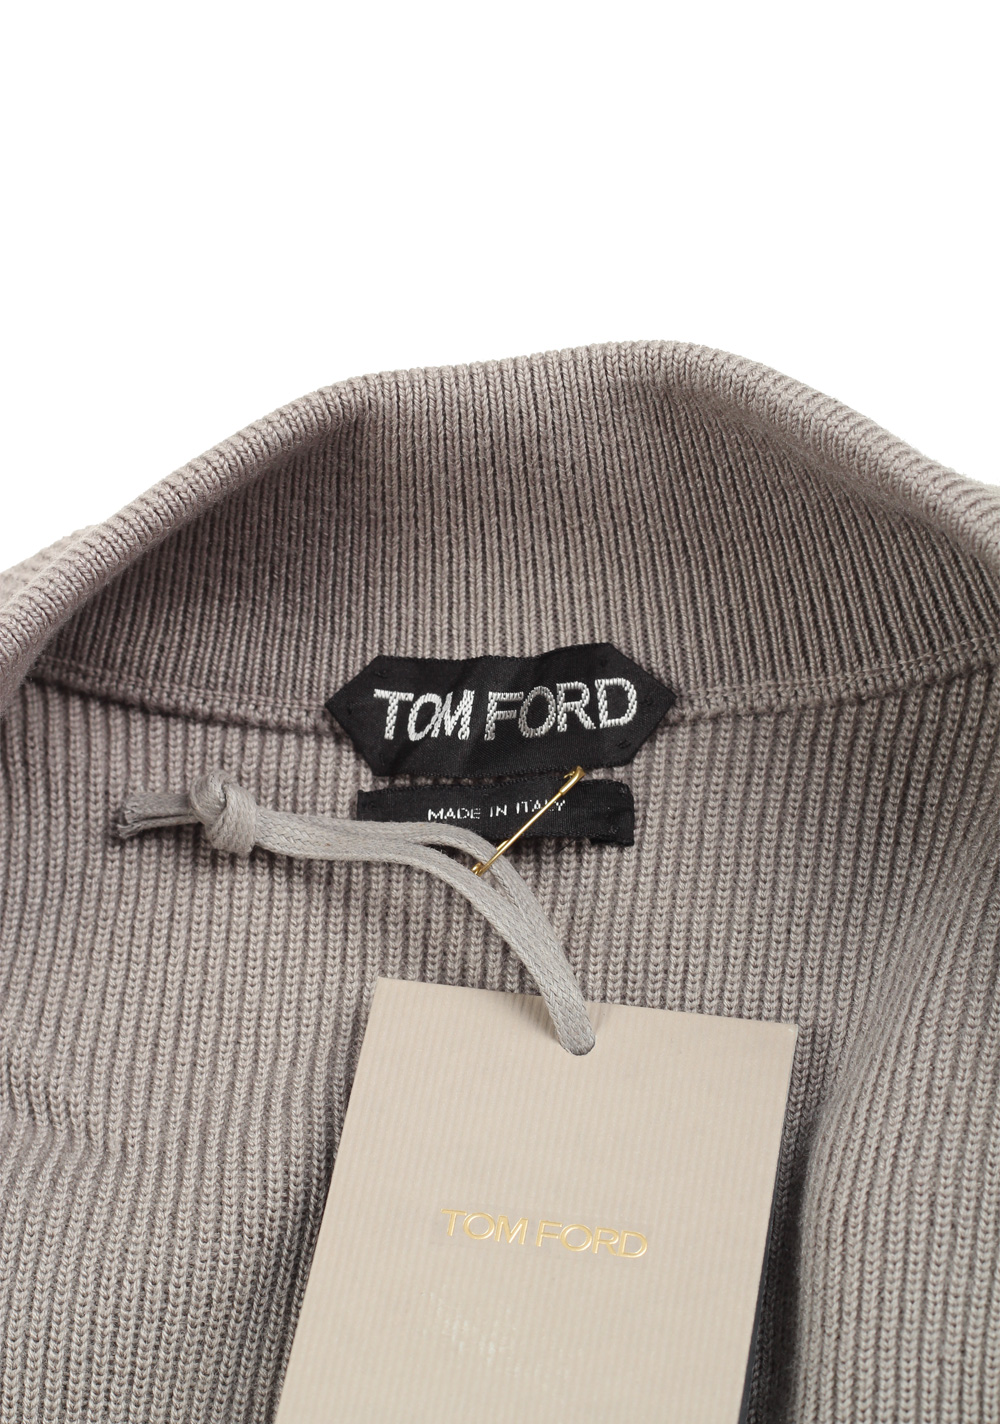 TOM FORD Beige Knitted Sleeve Bomber Jacket  Size 52 / 42R U.S.   Costume Limité